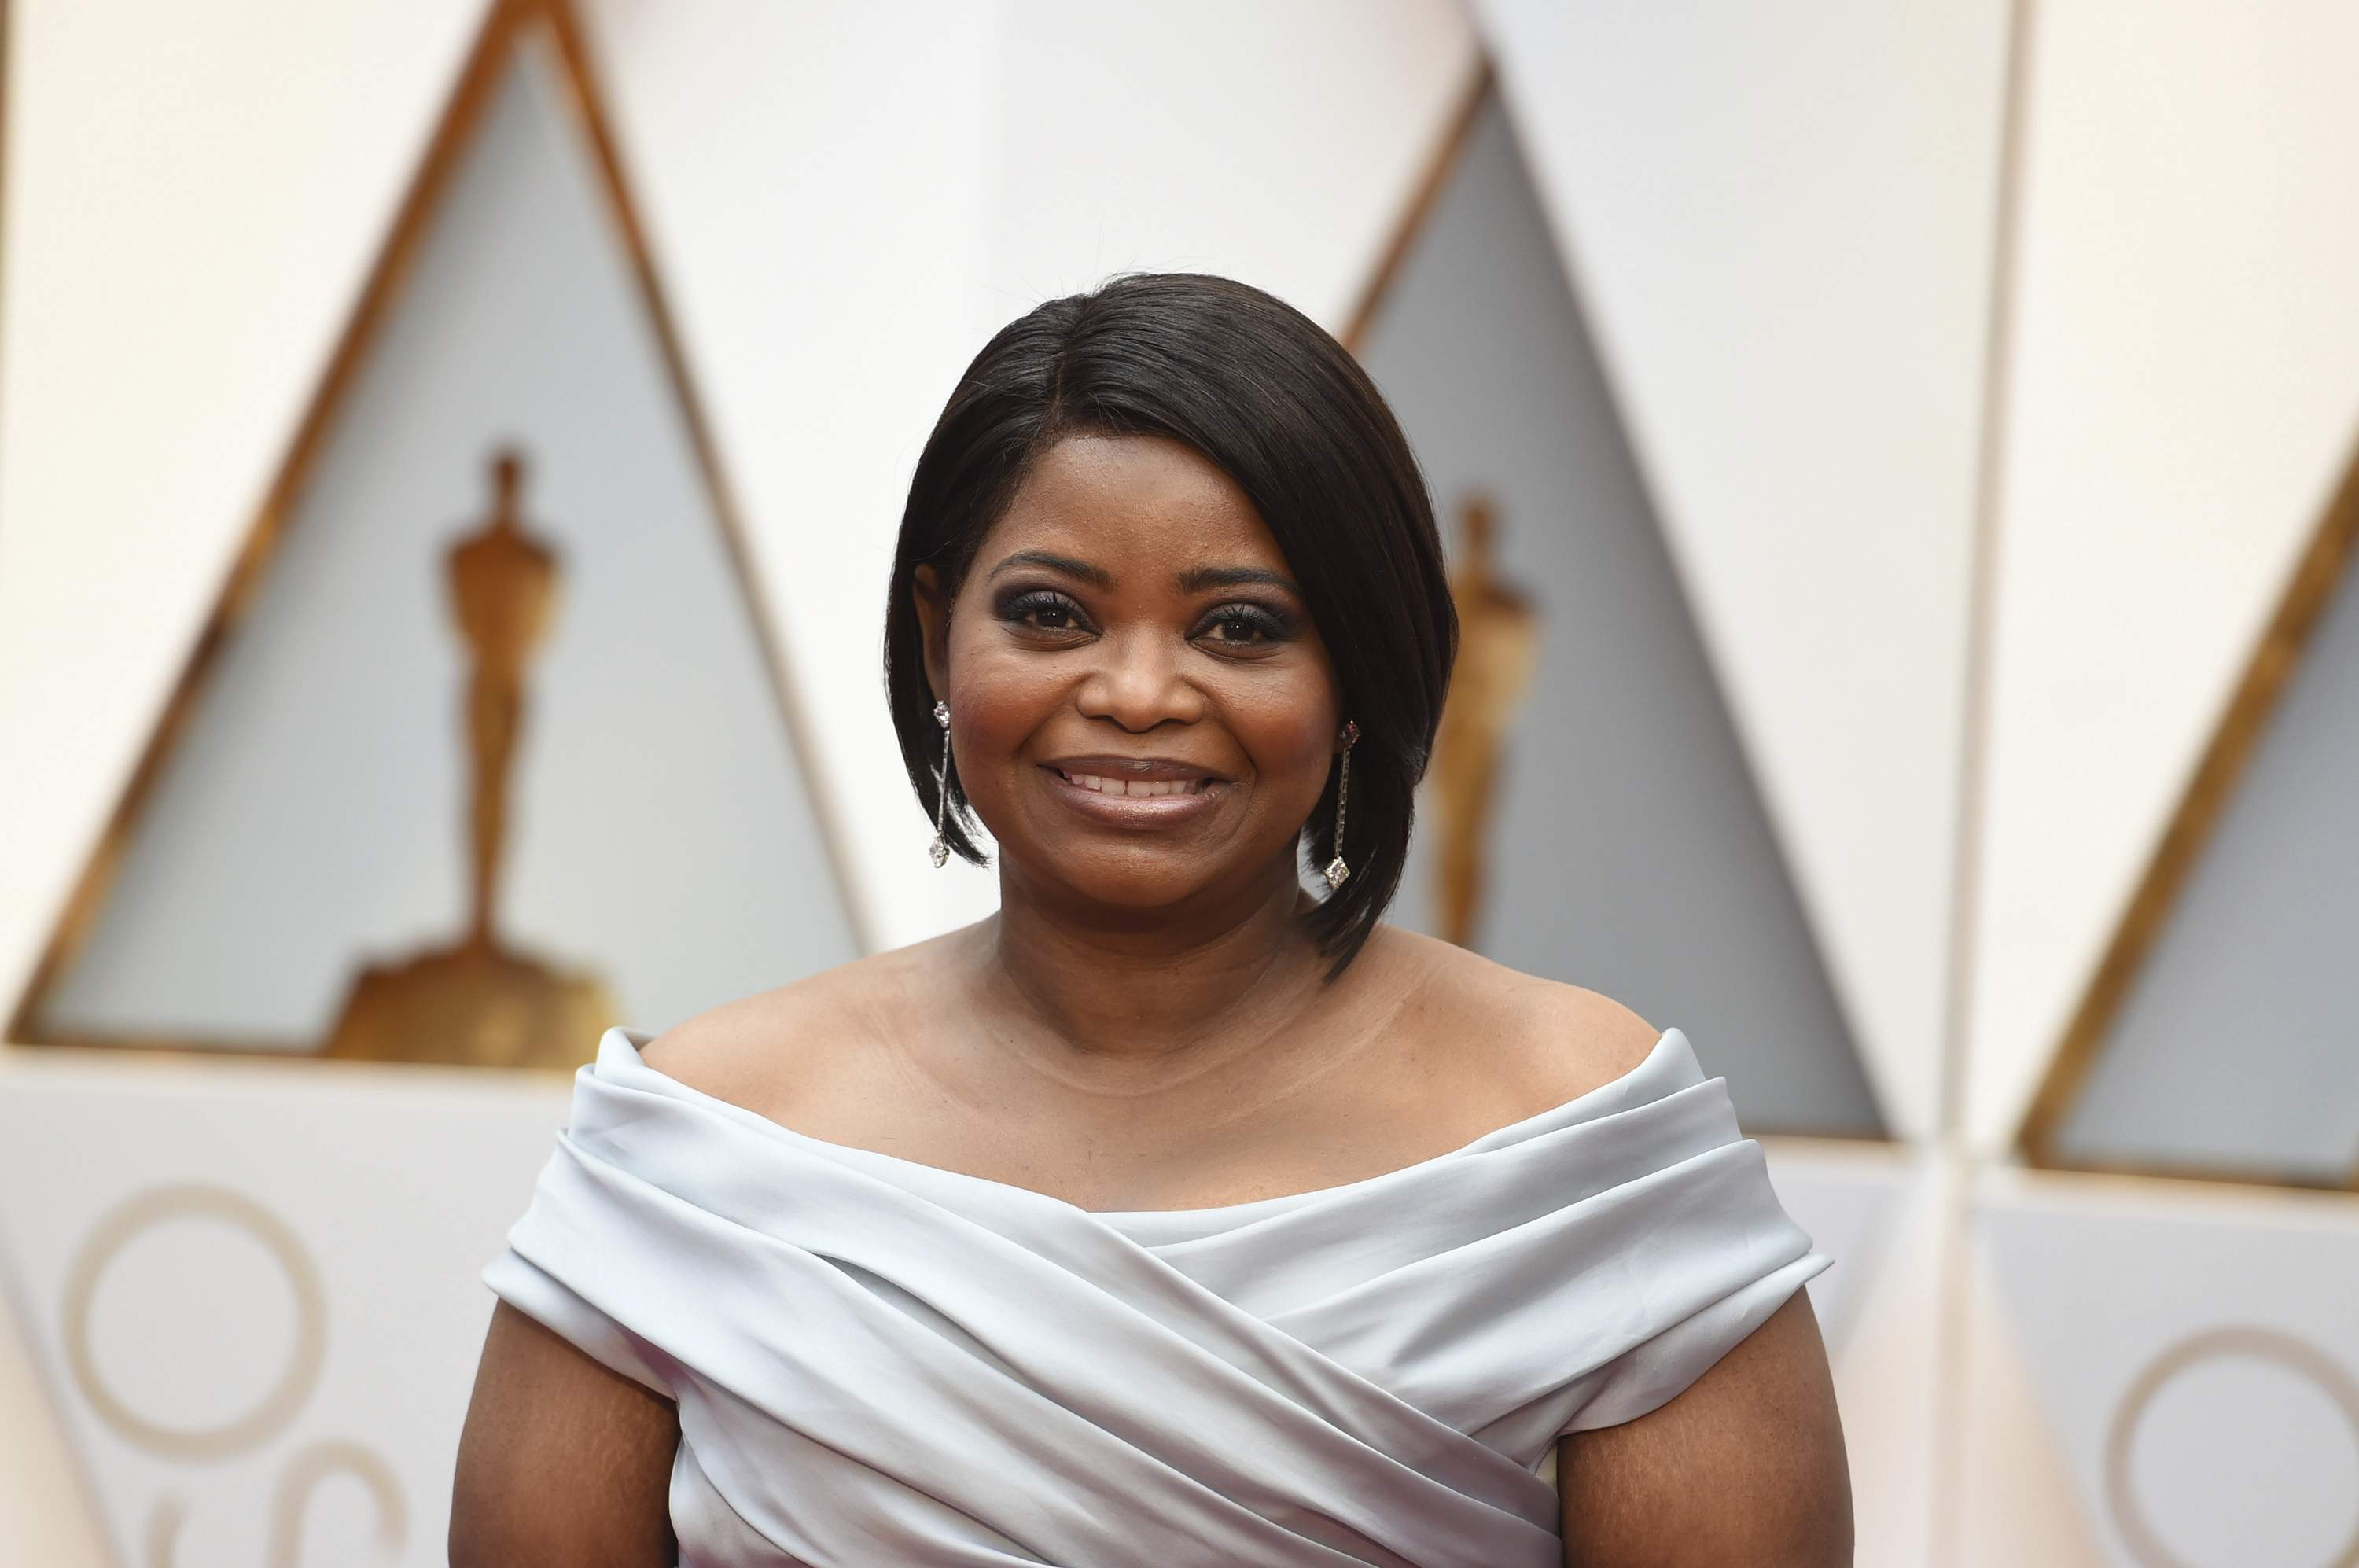 Octavia Spencer arrives at the Oscars on Sunday, Feb. 26, 2017, at the Dolby Theatre in Los Angeles. THE ASSOCIATED PRESS